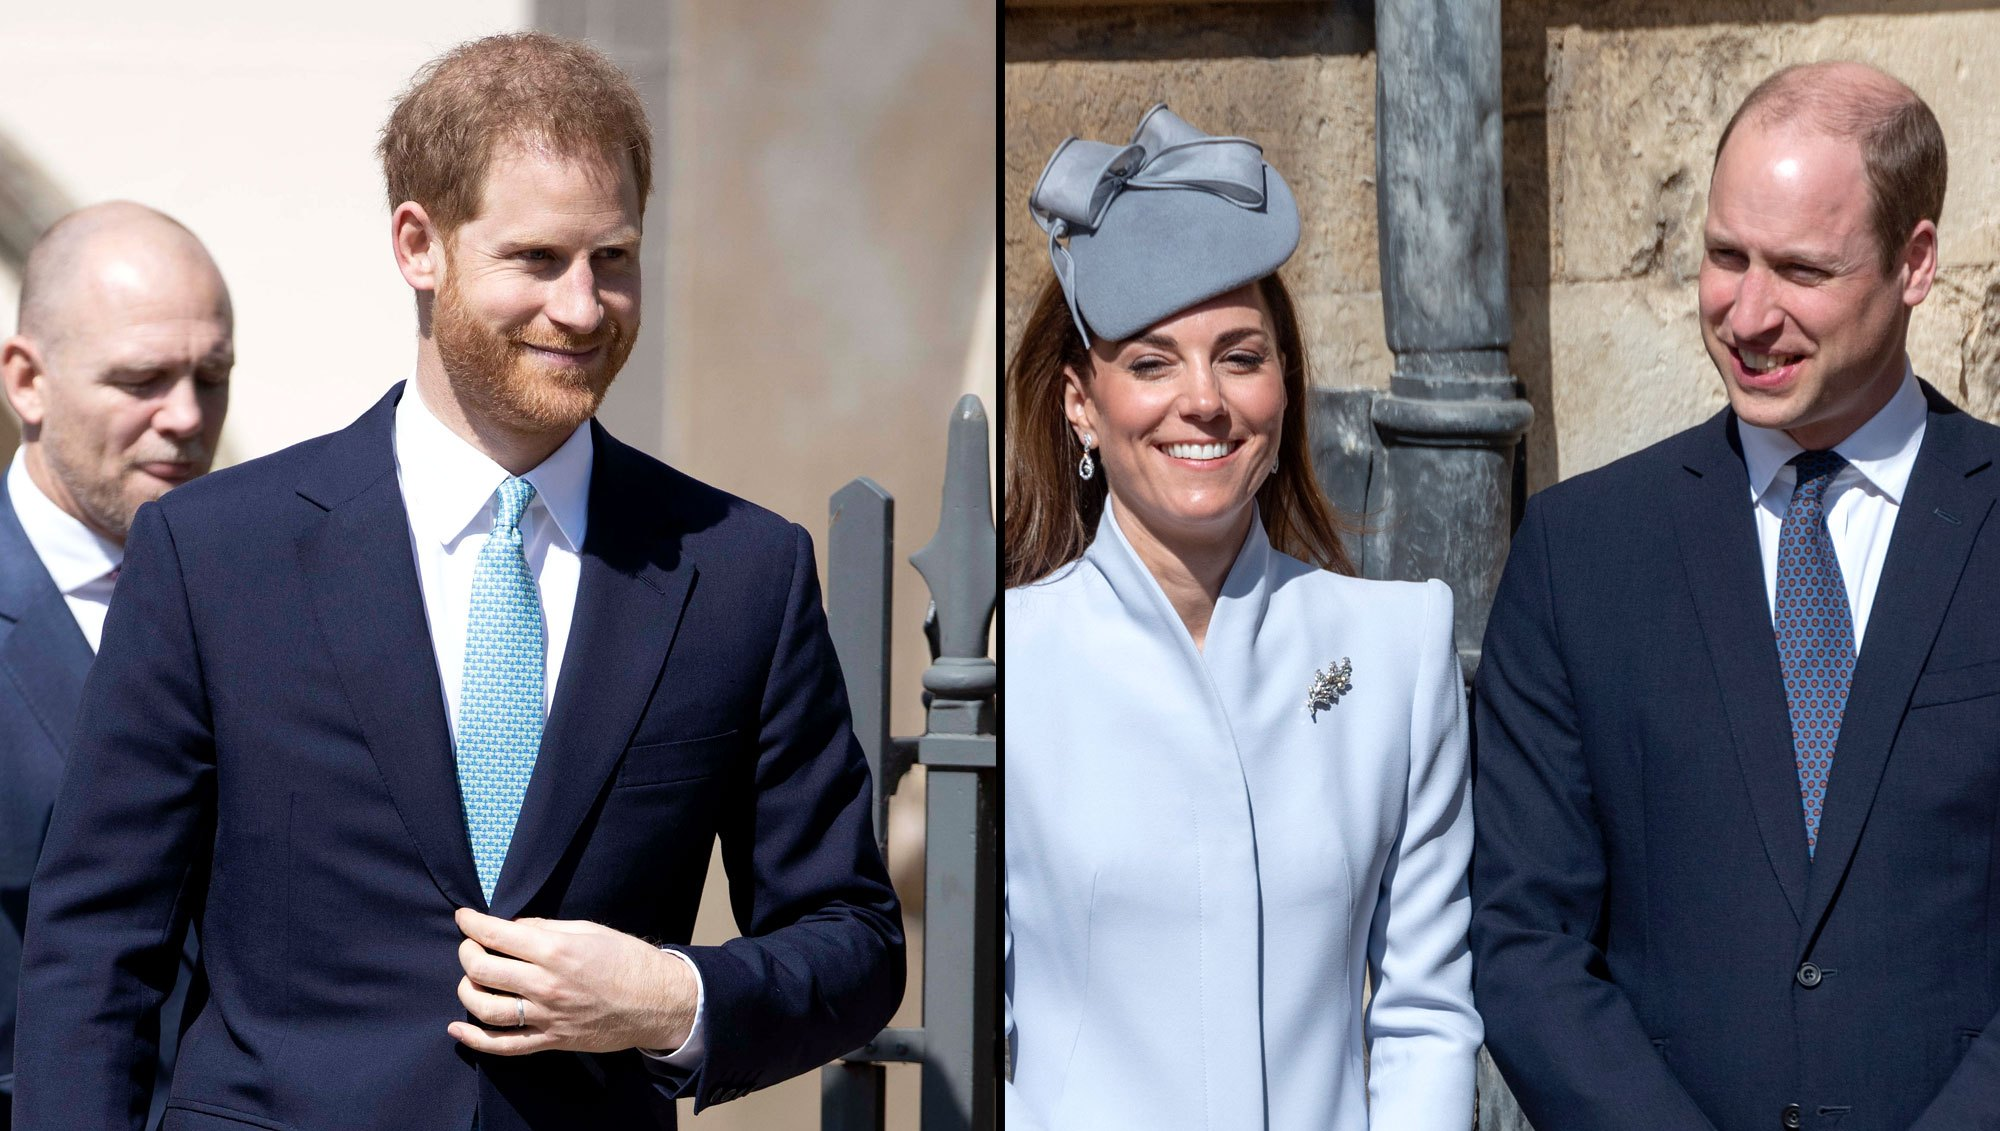 Prince Harry Makes Prince William and Duchess Kate Laugh in New Video From Easter Service Amid Feud Reports